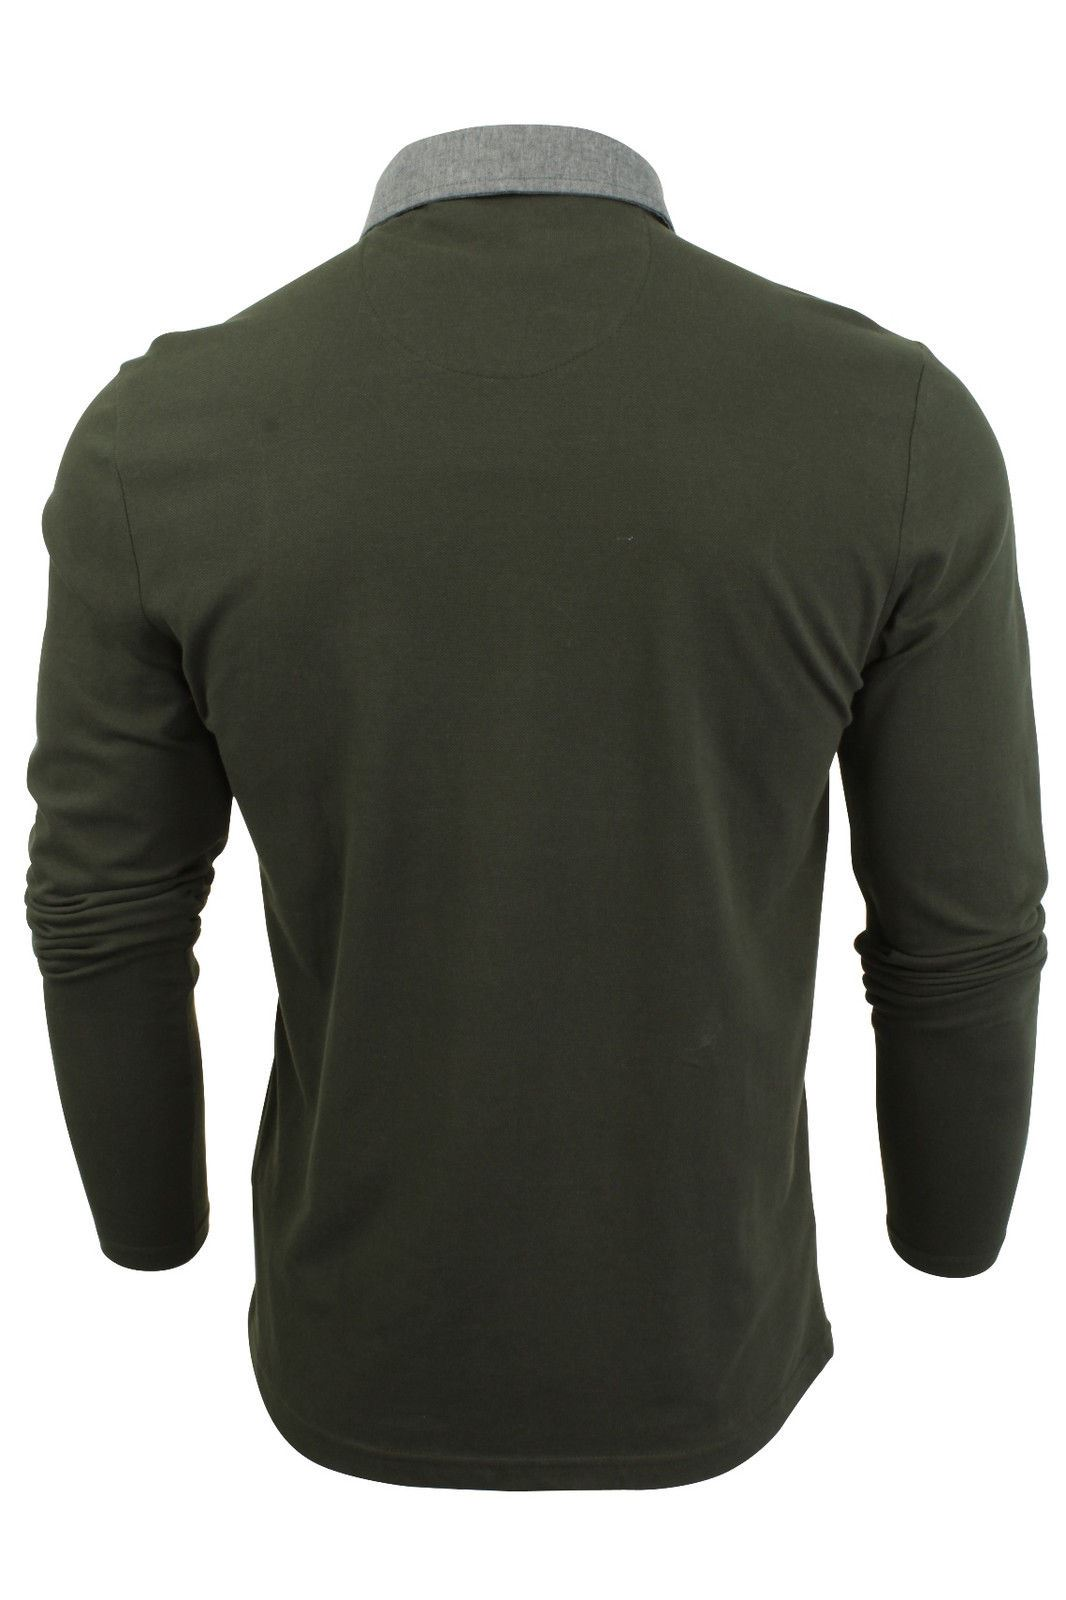 New-Mens-Button-Up-Long-Sleeve-Pique-Collared-Casual-Formal-Polo-Jumper-Shirt thumbnail 5